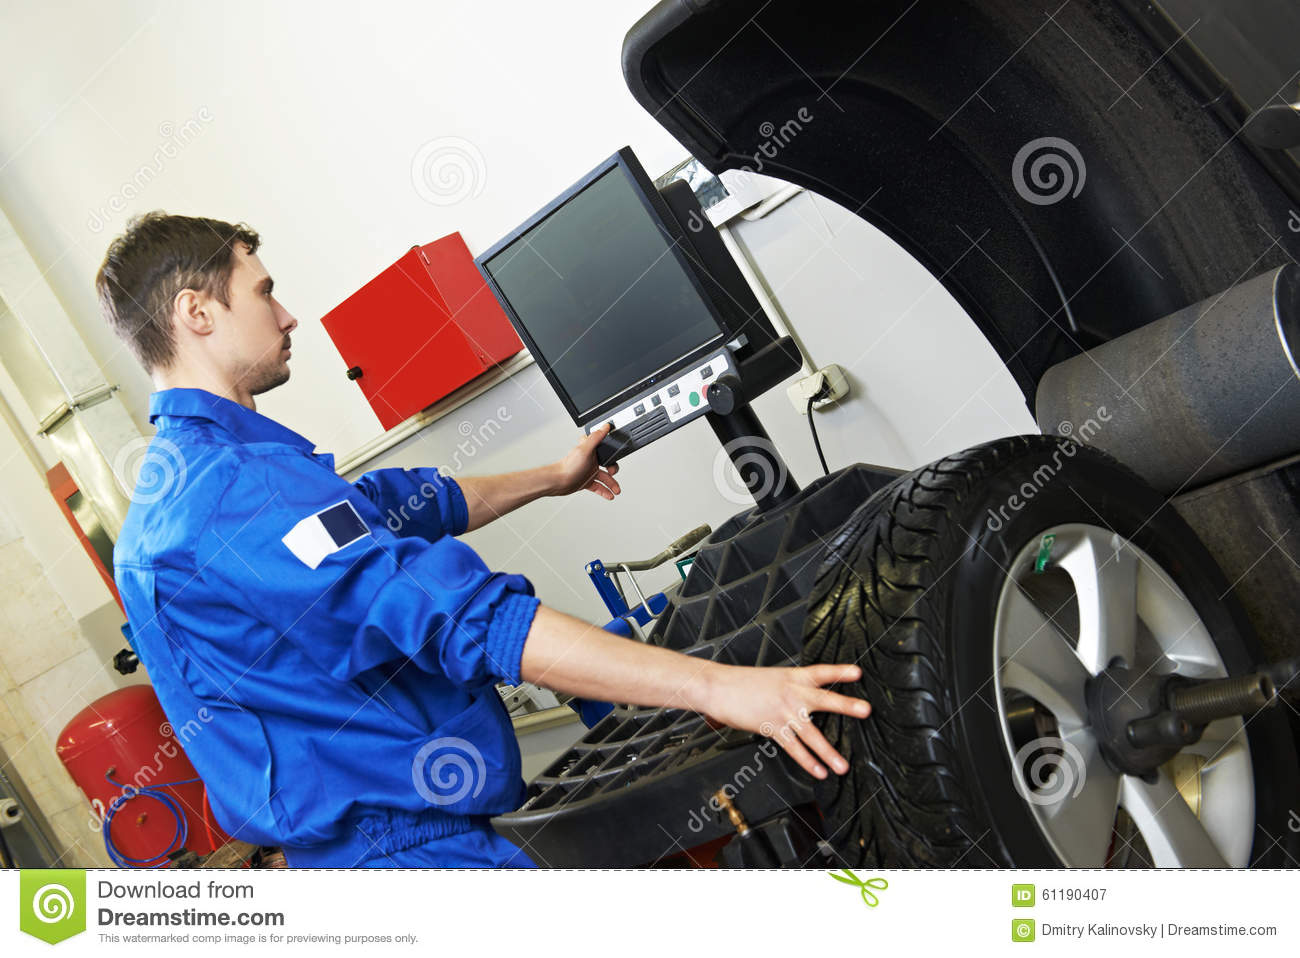 Wheel Alignment Machine >> Car Wheel Alignment And Balancing Stock Image - Image of technician, labor: 61190407